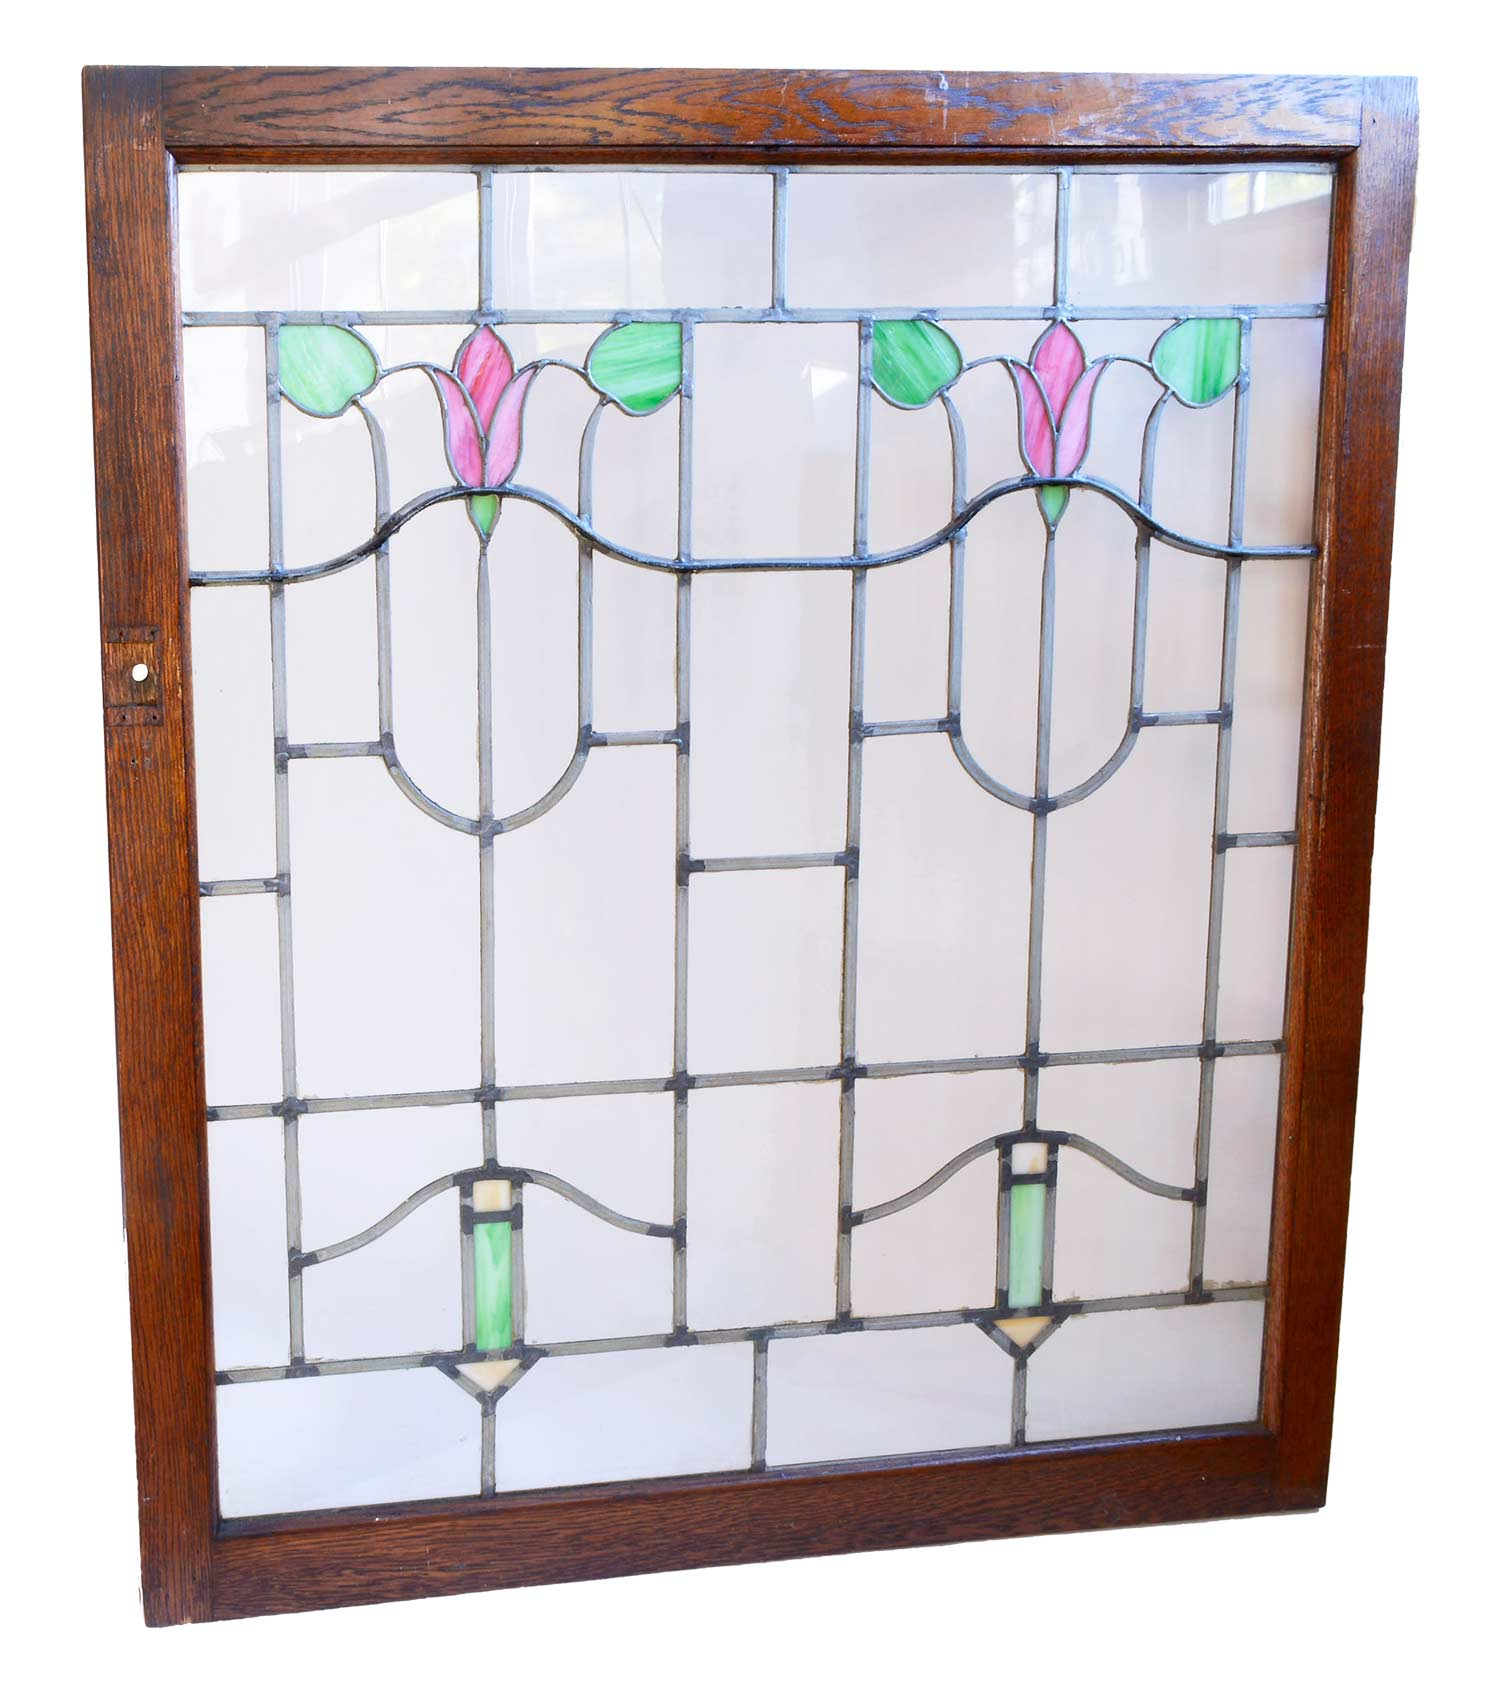 45795-arts-and-crafts-window-with-pink-tulips-back.jpg